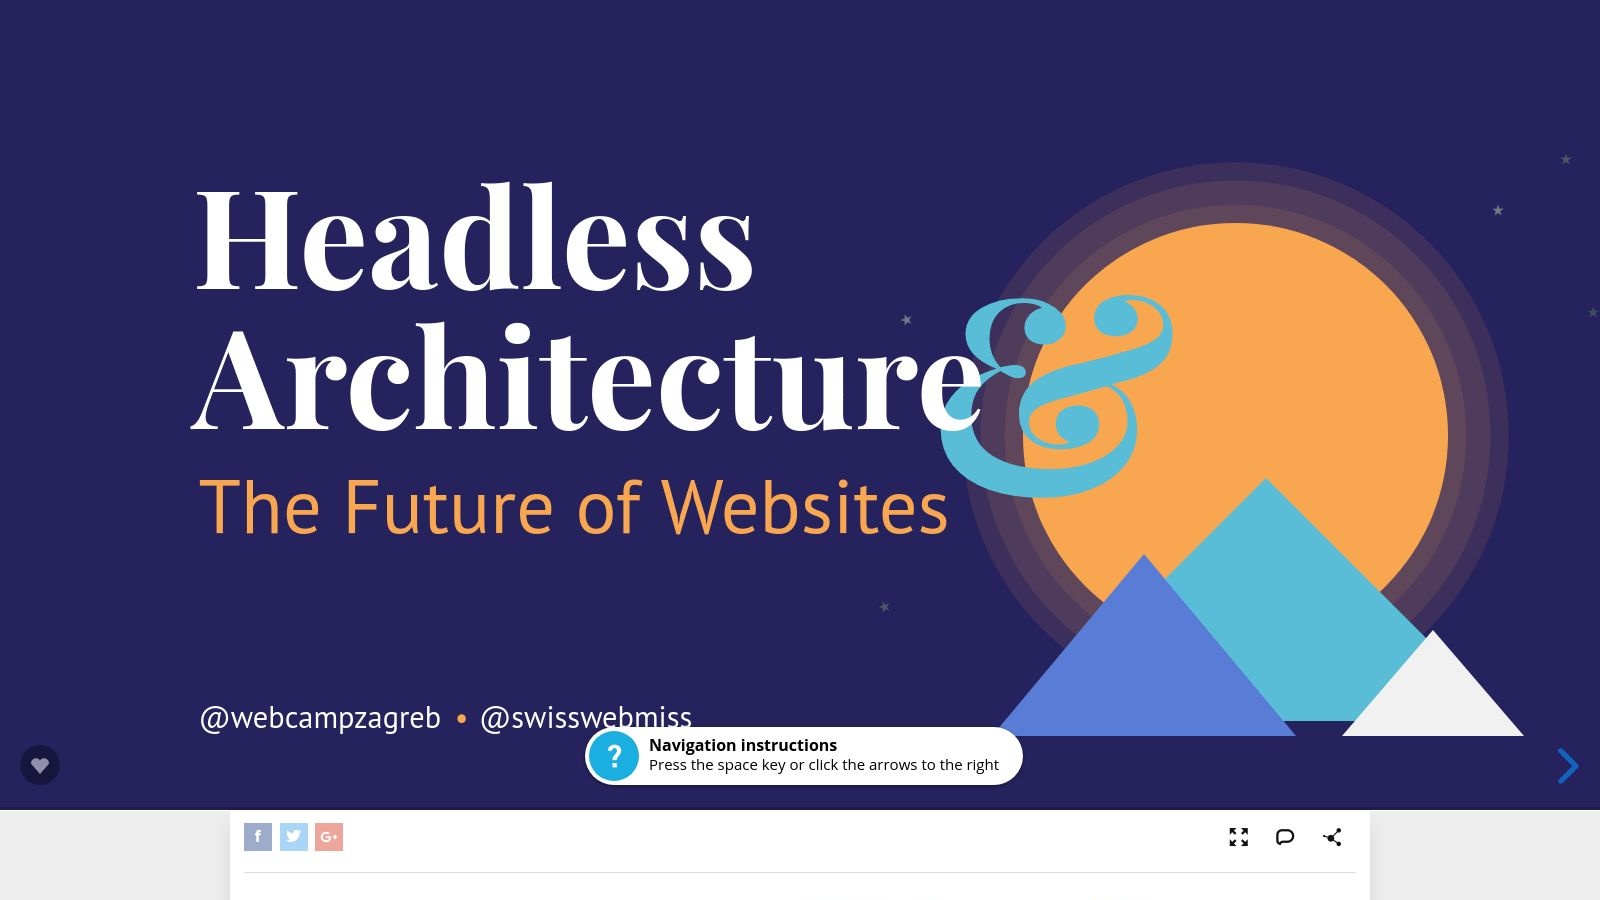 Headless architecture and the future of websites